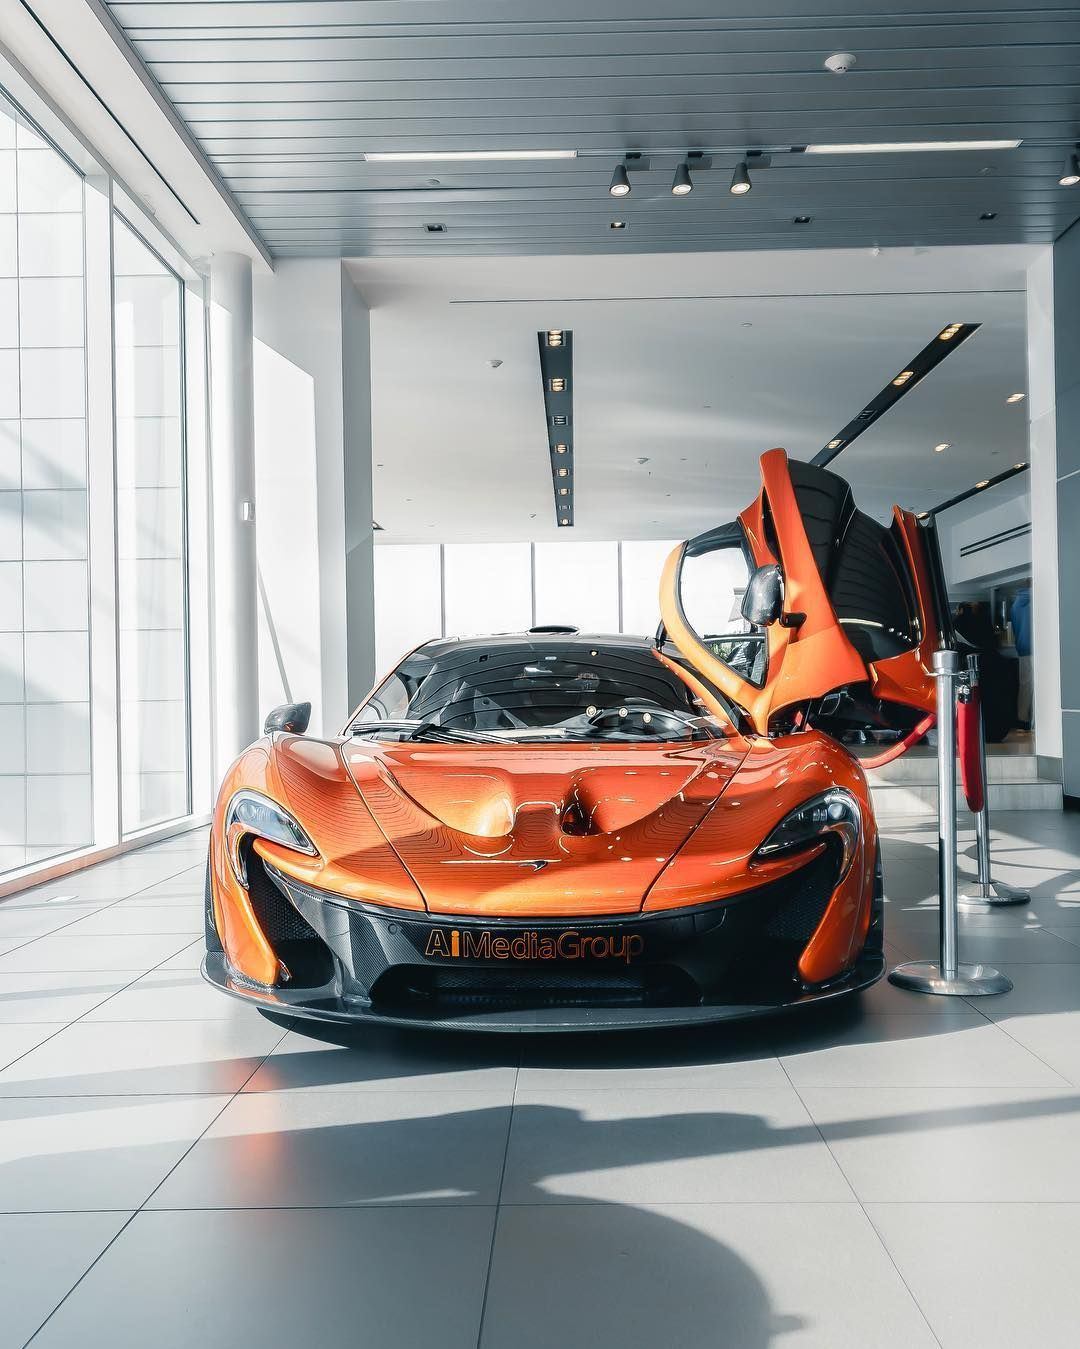 It Doesn T Get Better Than This My Ultimate Supercar Ride Dreamcars Supercar Luxury Car Coolcars Exoticcars Luxury Cars Best Luxury Cars Super Cars